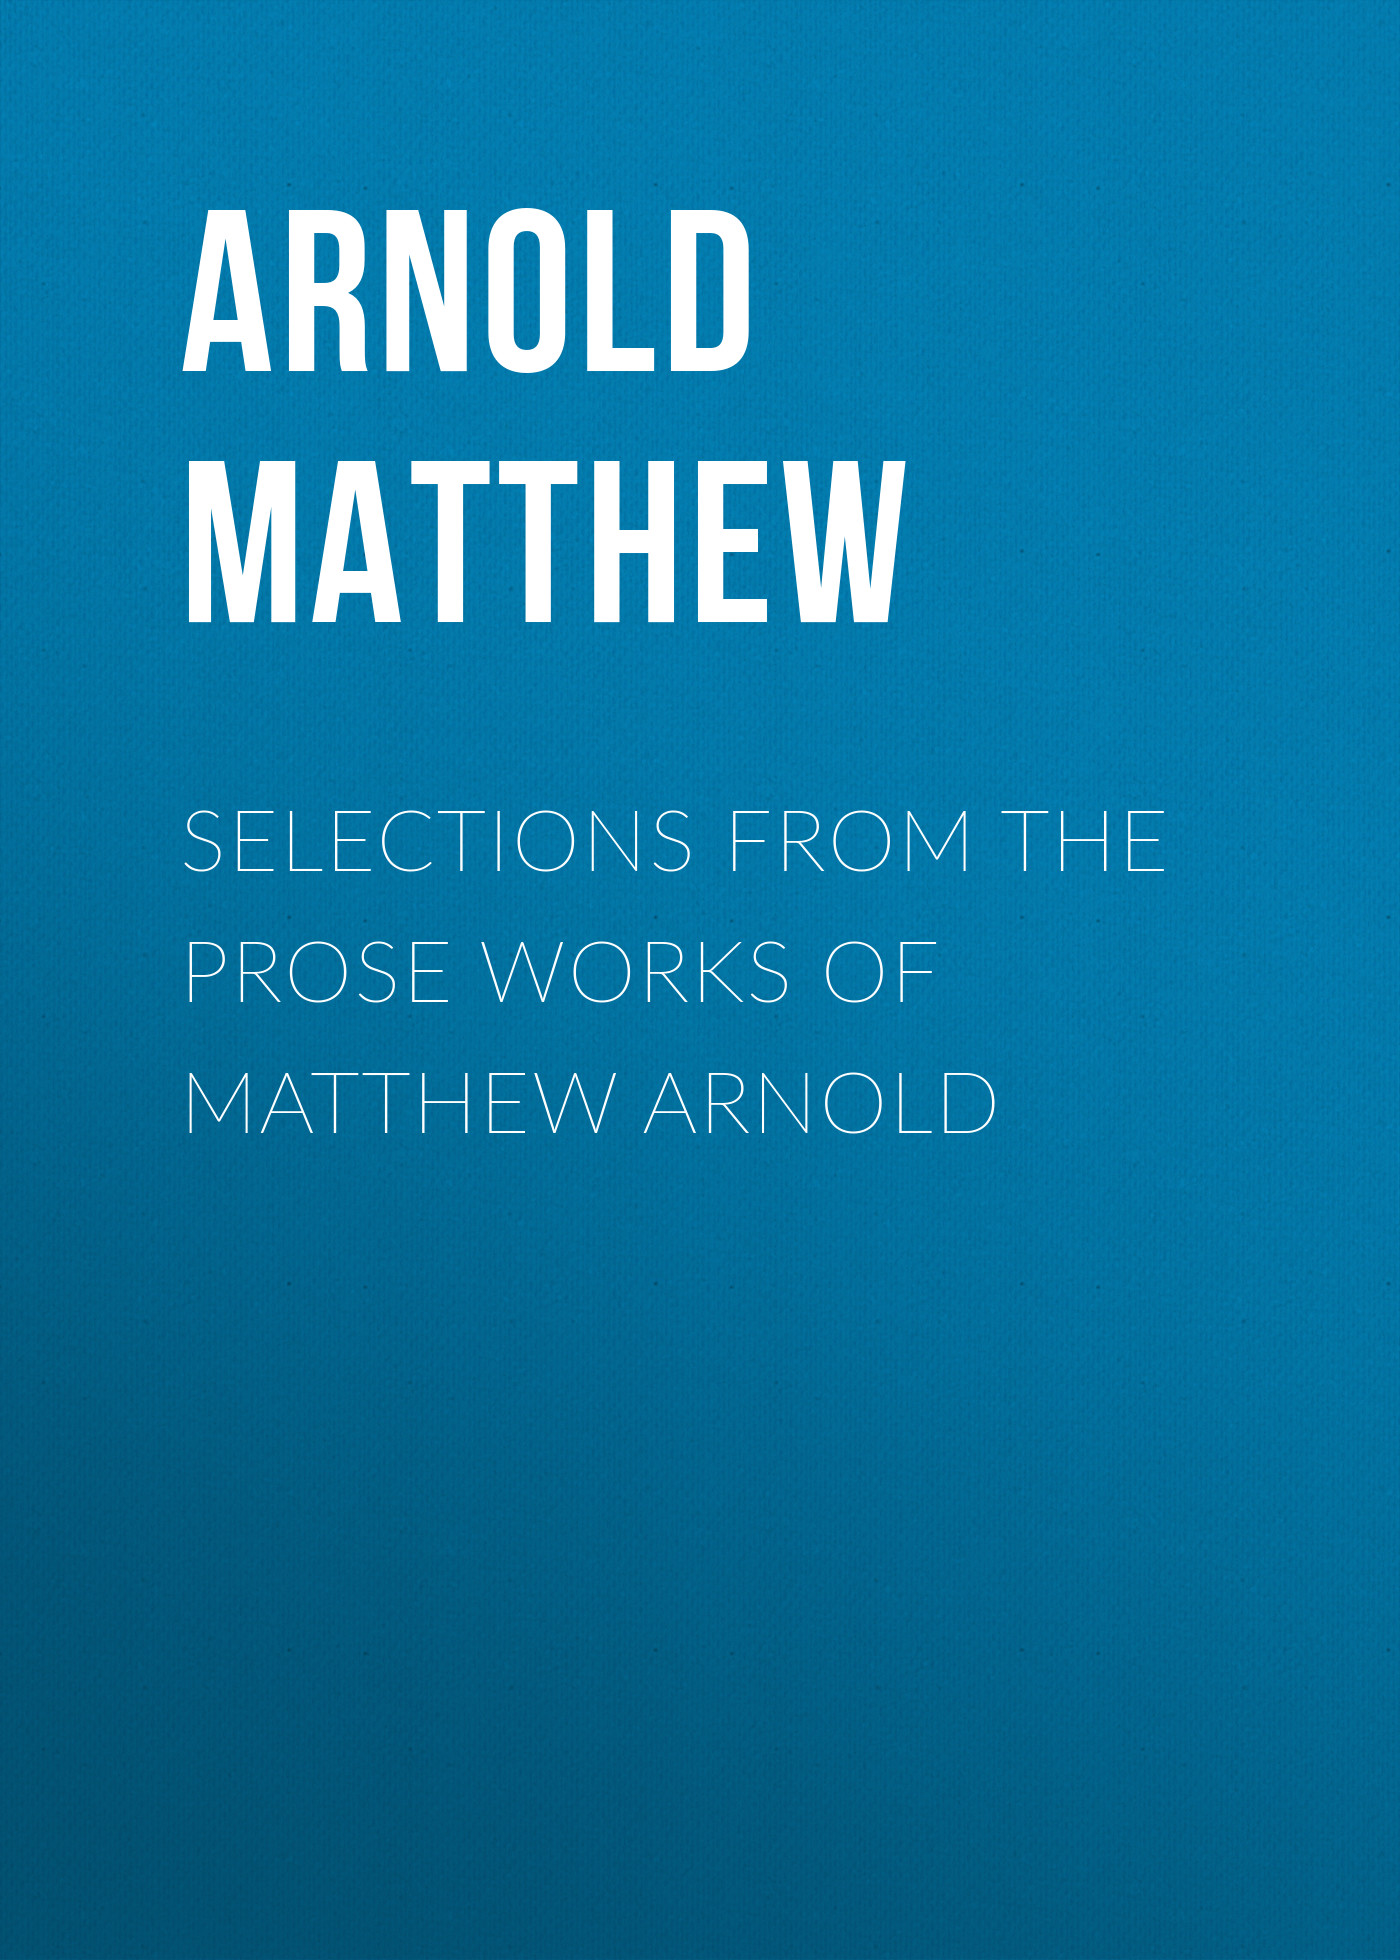 Arnold Matthew Selections from the Prose Works of Matthew Arnold